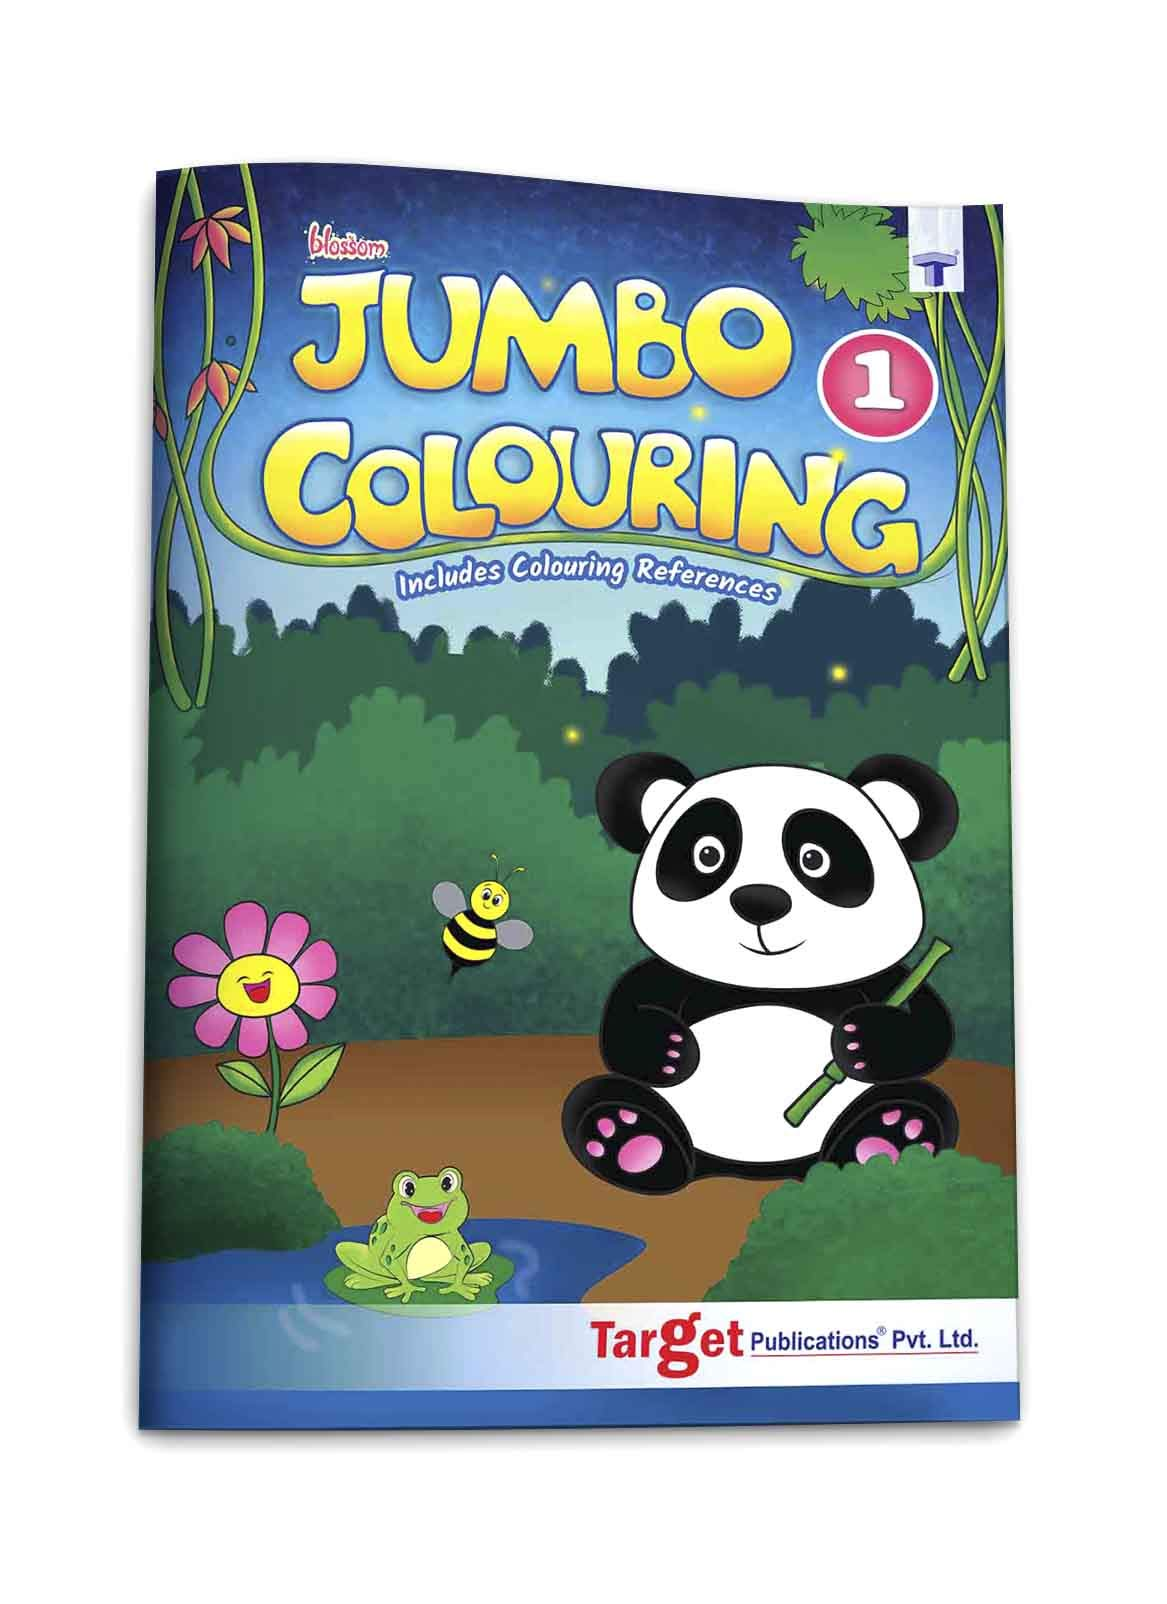 Blossom Jumbo Creative Colouring Book for Kids | 3 to 5 years old | Best Gift to Children for Drawing, Coloring and Painting with Colour Reference Guide | A3 Size | Level 1